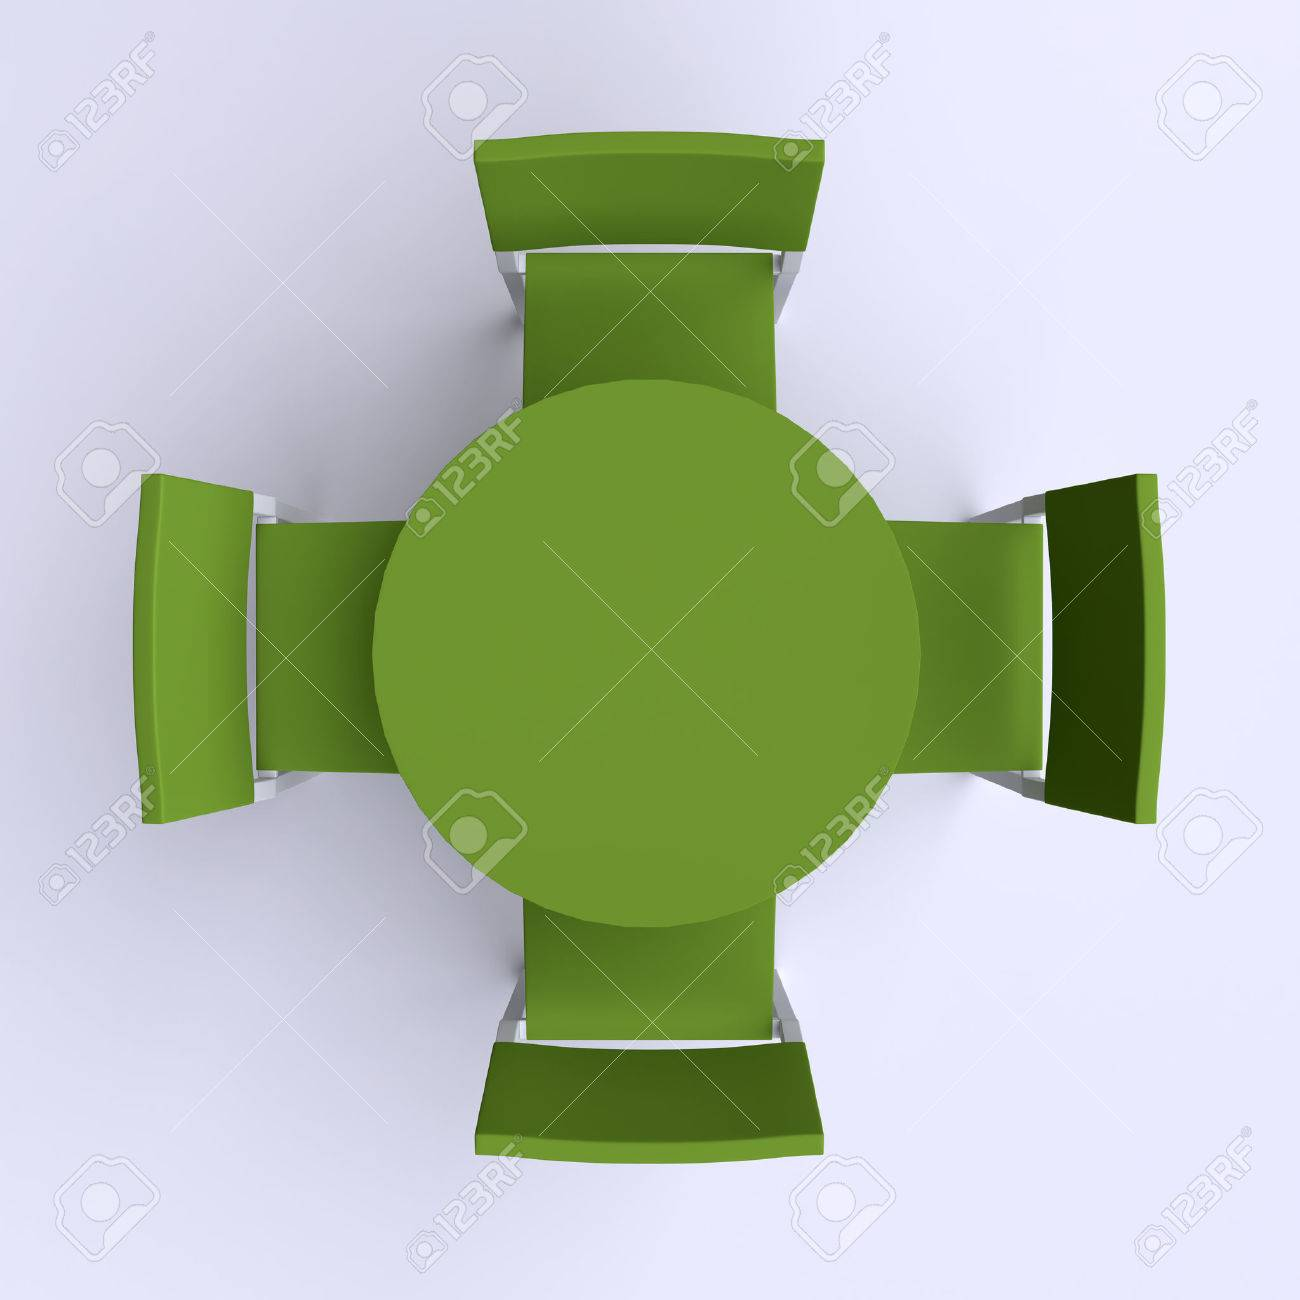 Round Table With Four Chairs Top View 3d Illustration Stock Photo